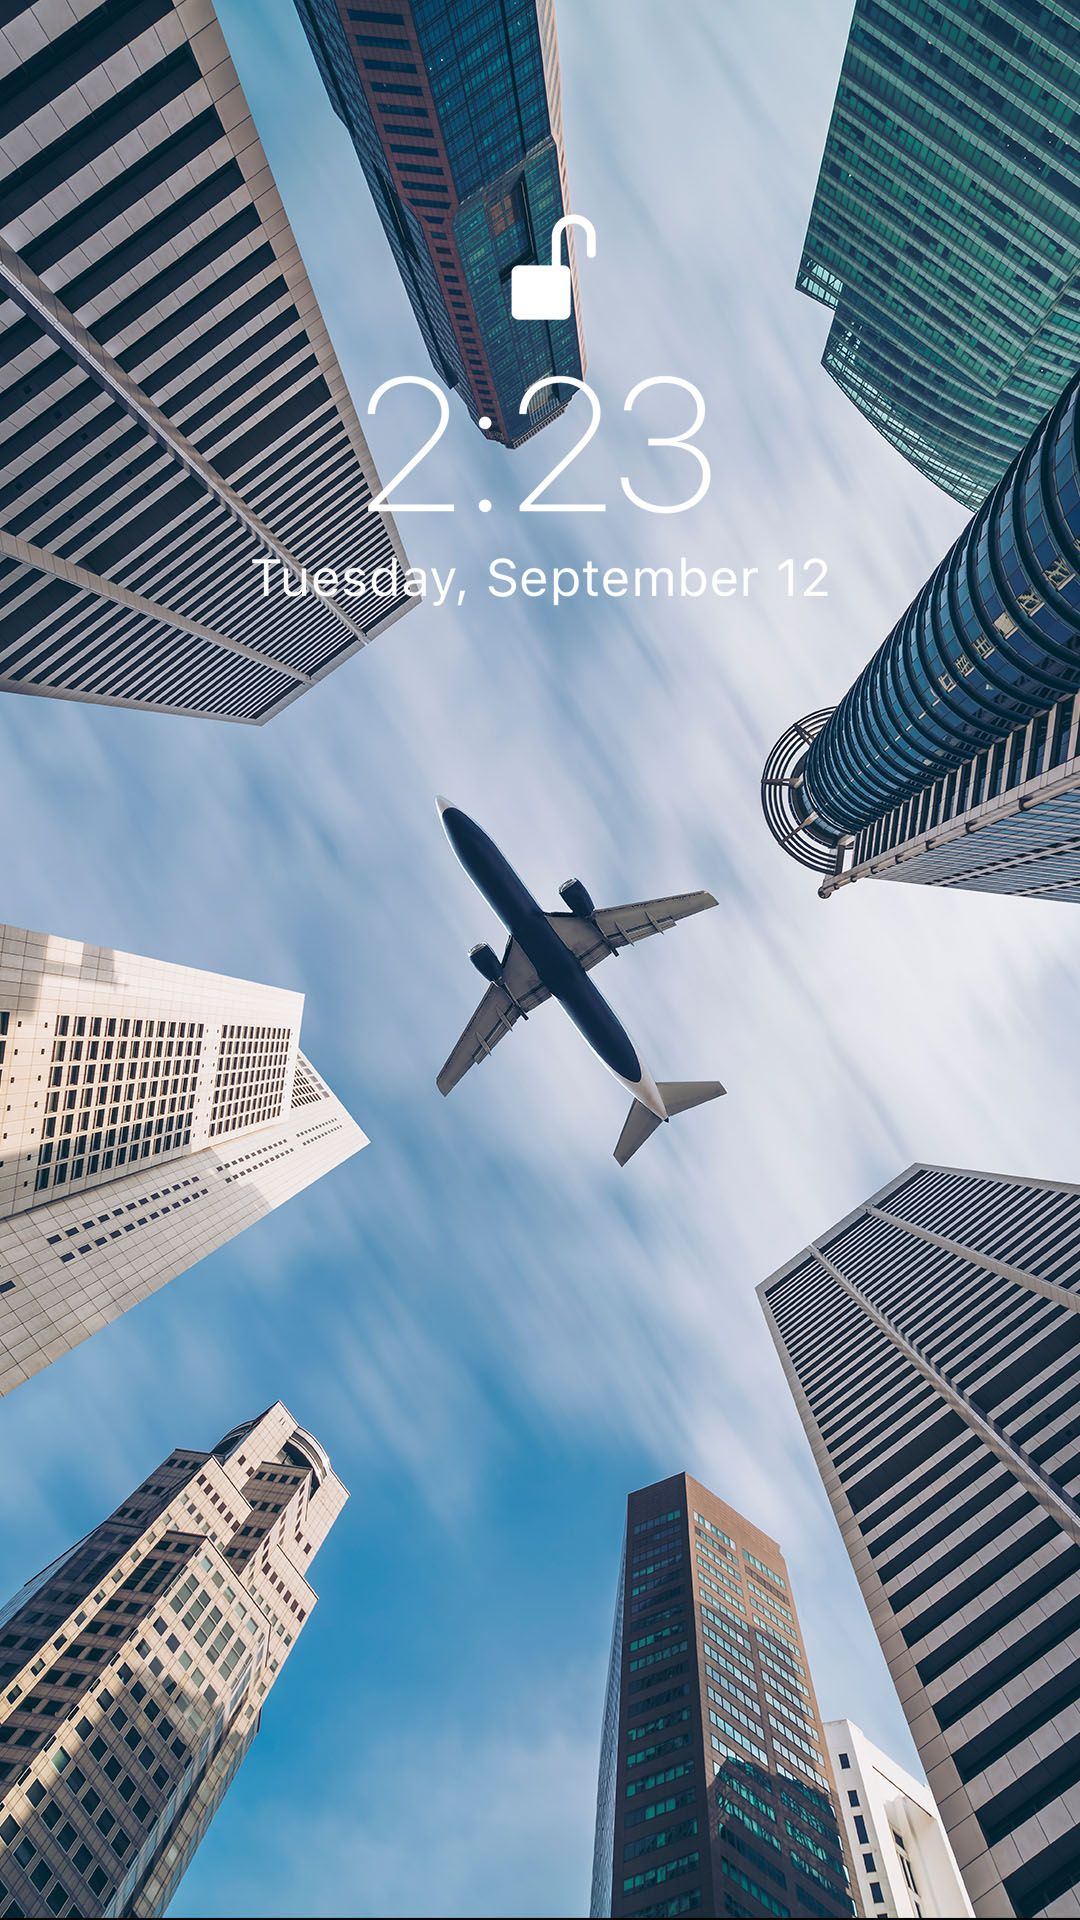 City wallpaper for your iPhone XS from Vibe App wallpaper